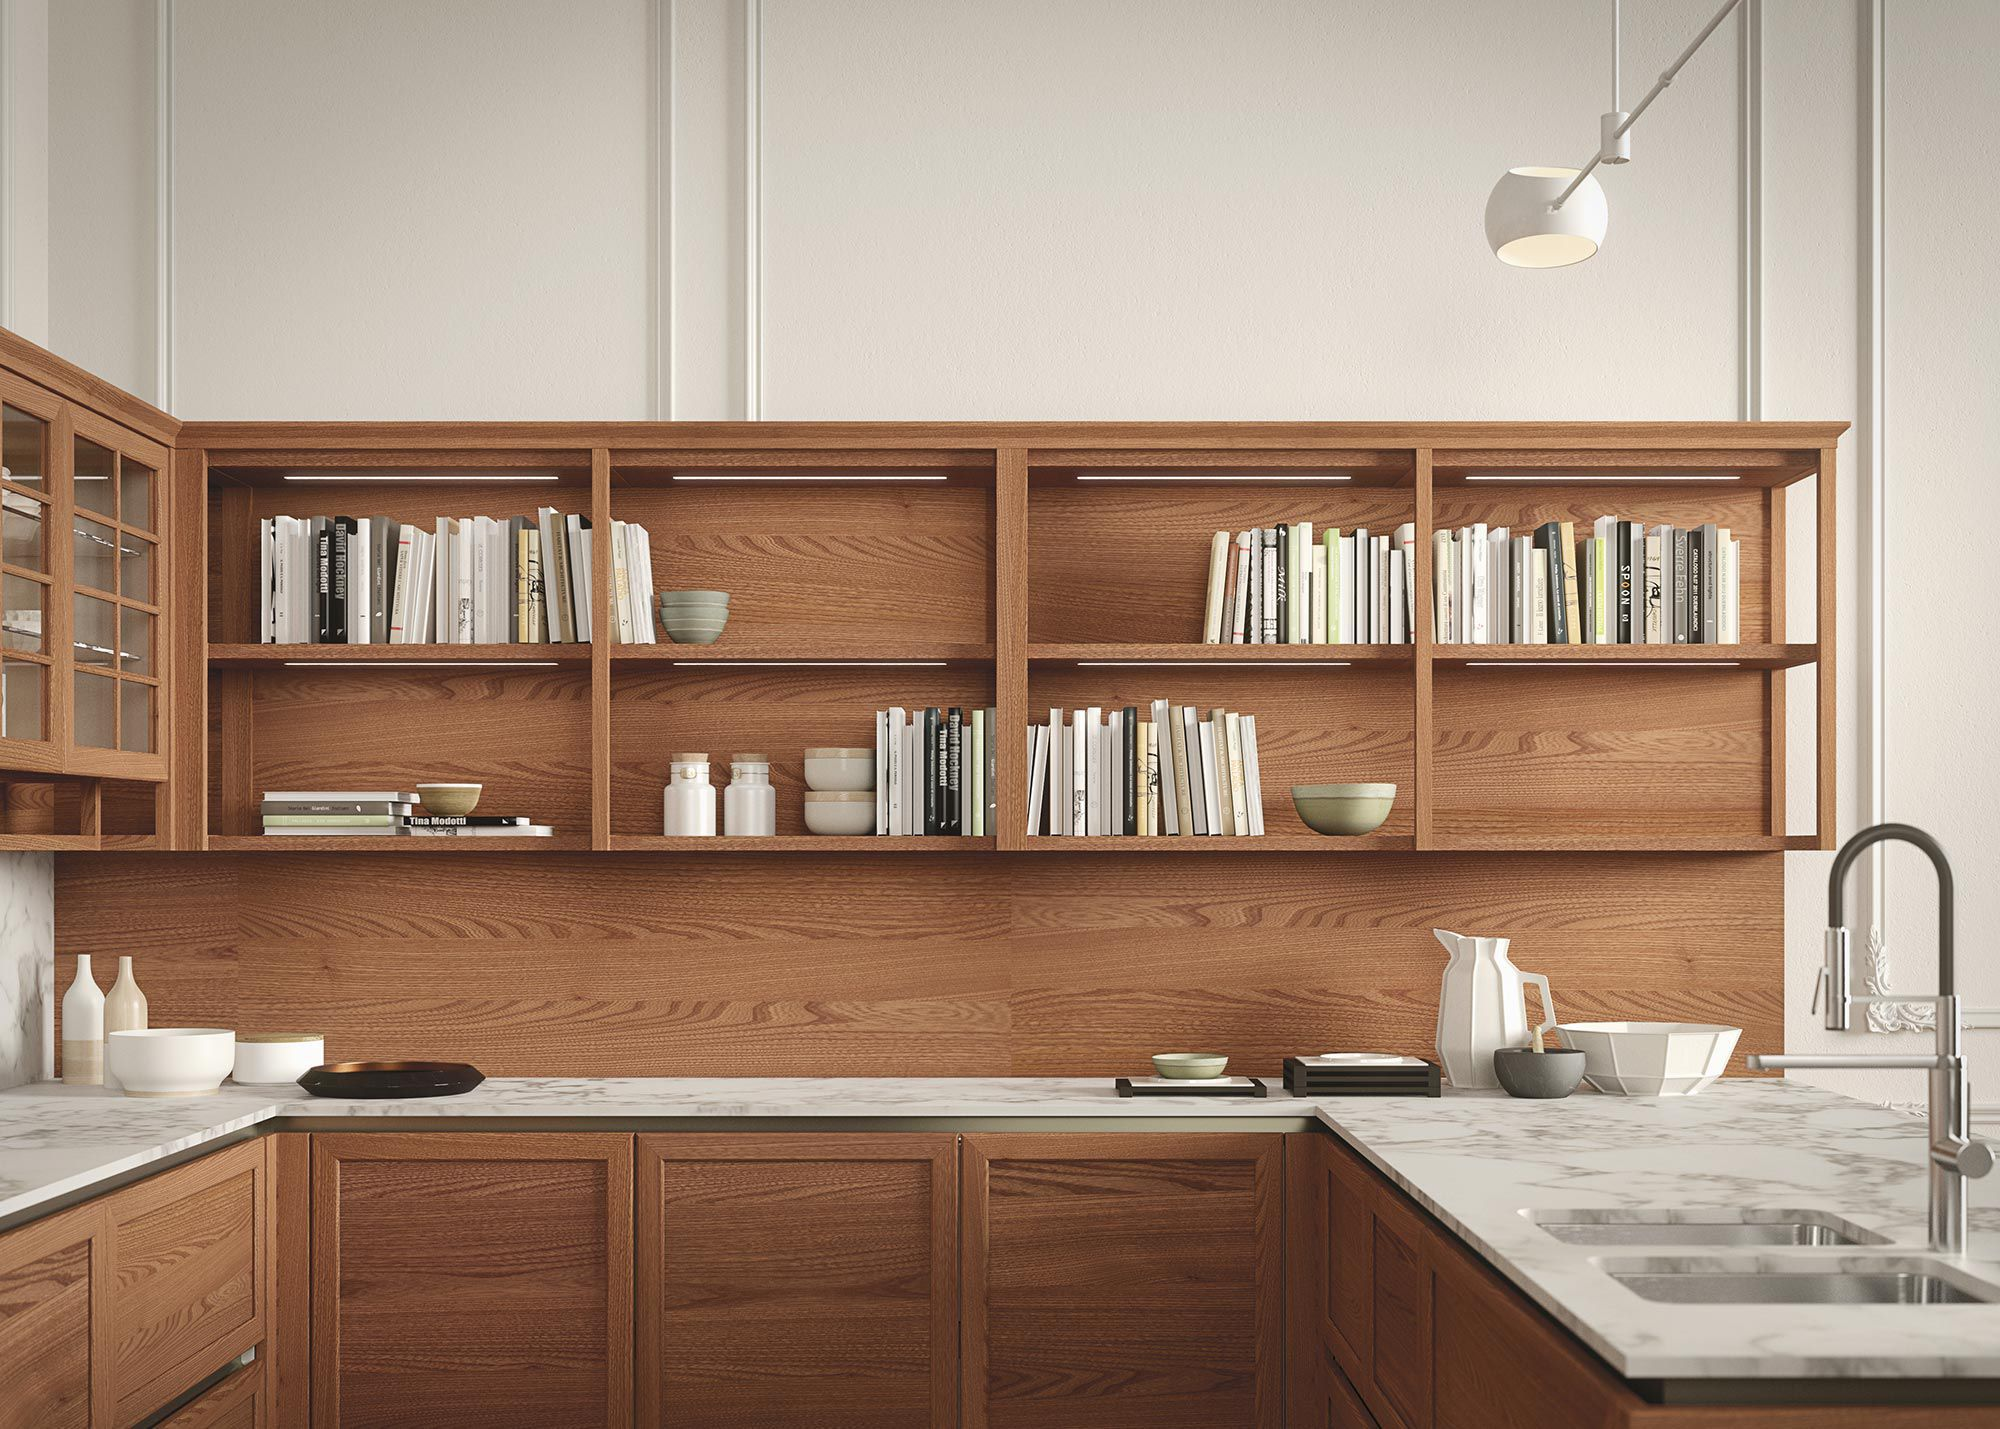 ... Traditional Kitchen / Elm / Modular / Island HERITAGE By Iosa Ghini  Design SNAIDERO ...